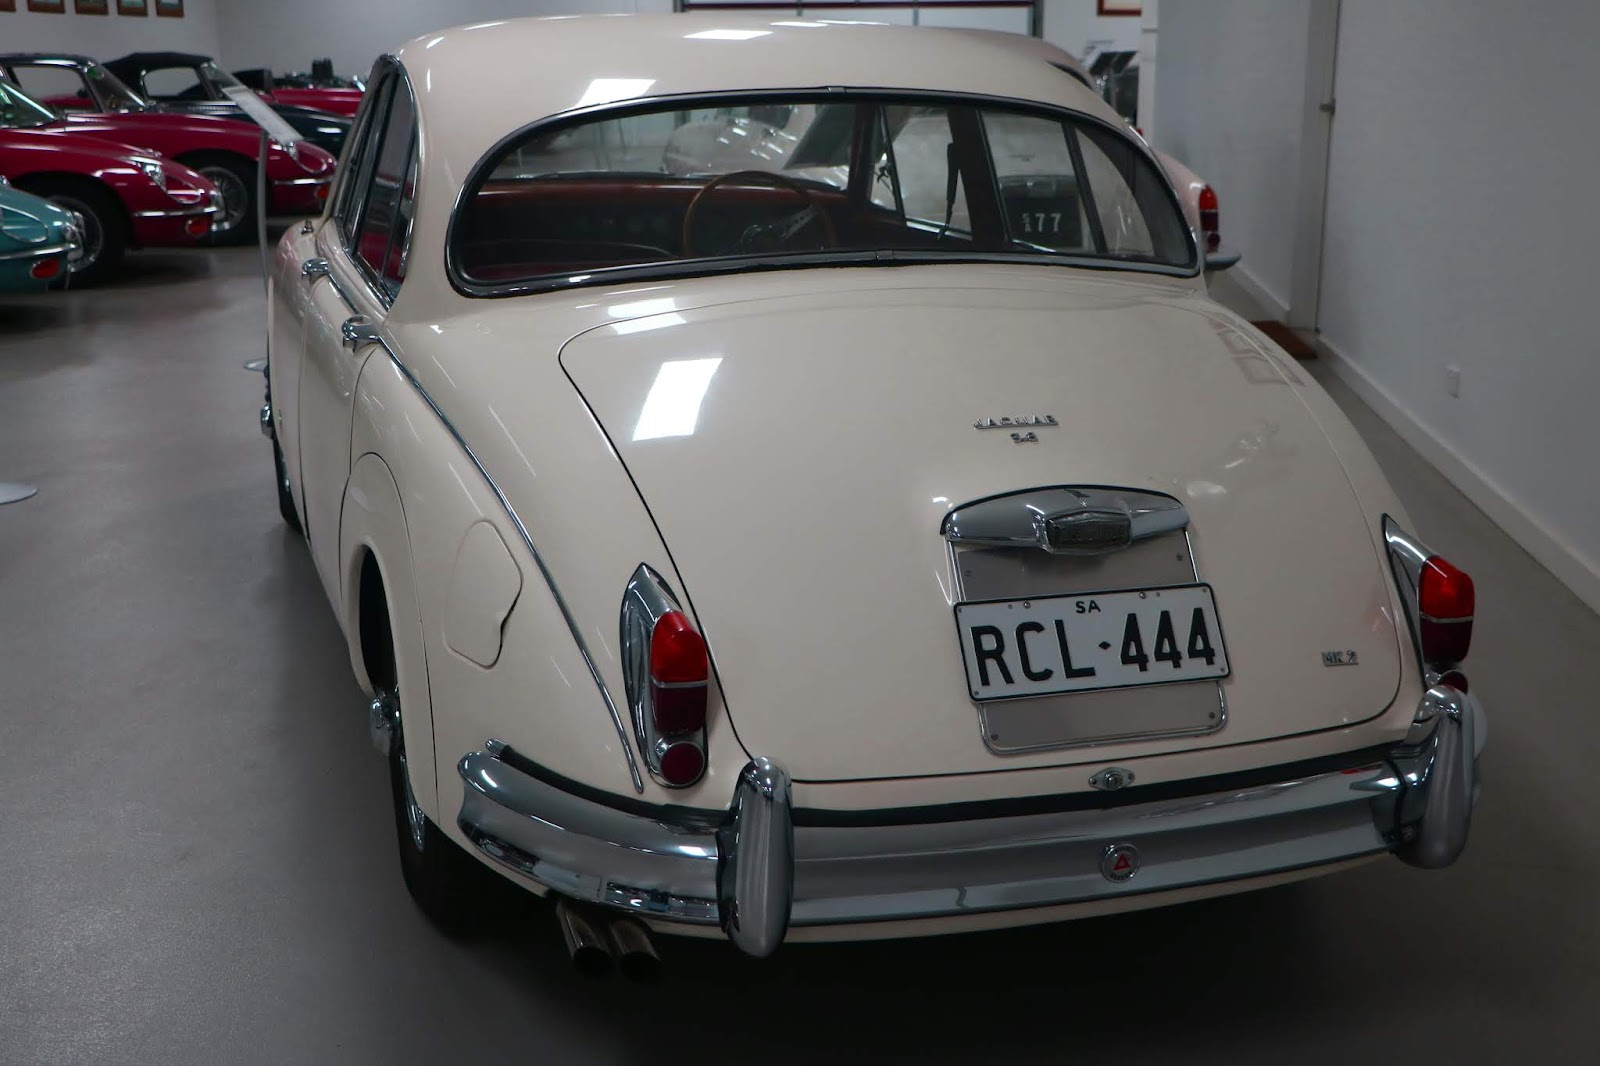 Carl_Lindner_Collection - 1965 Jaguar Mk II 3.8 Sedan 04.JPG